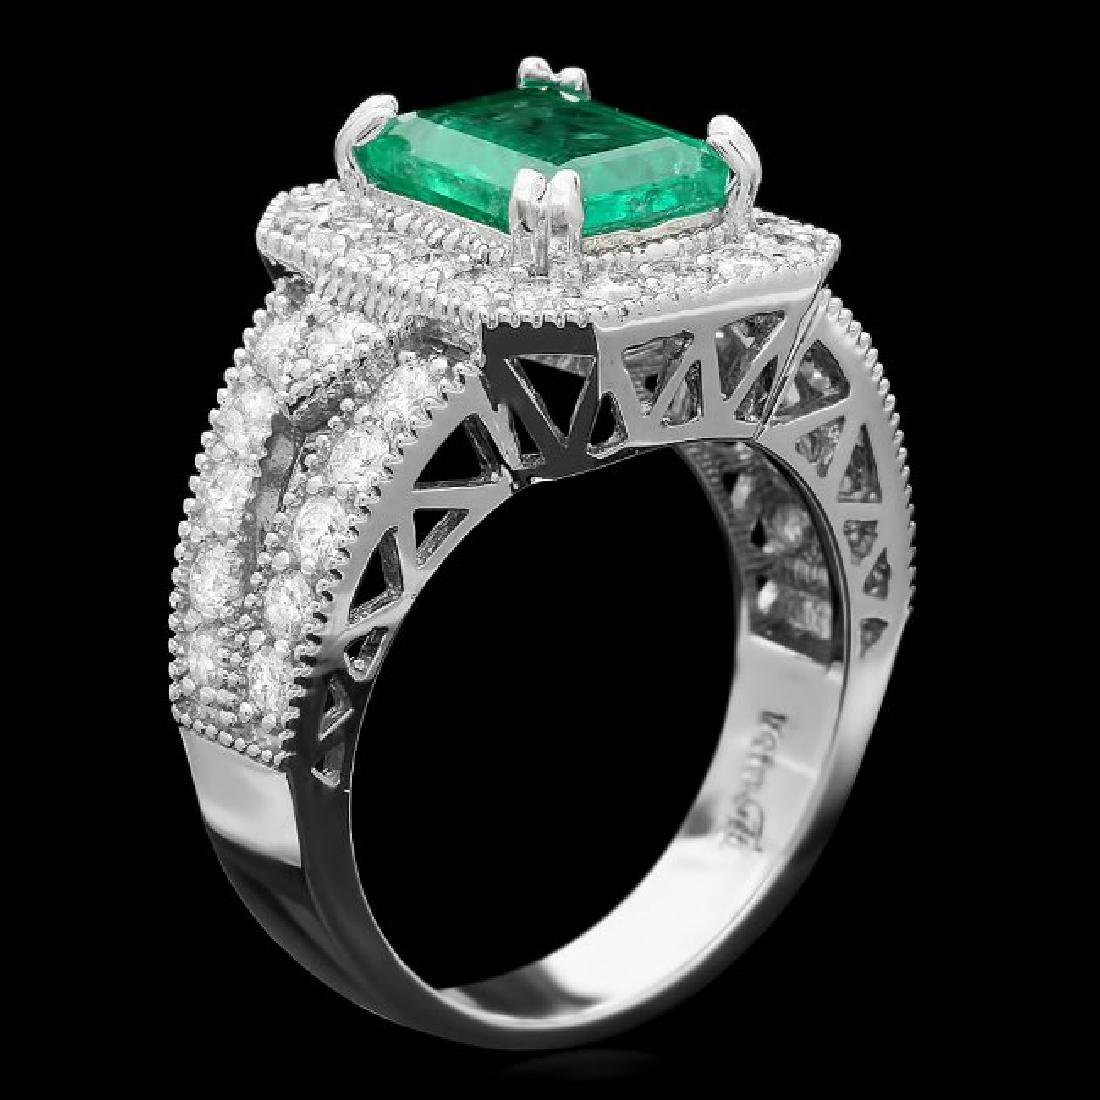 14k White Gold 2.00ct Emerald 1.30ct Diamond Ring - 2